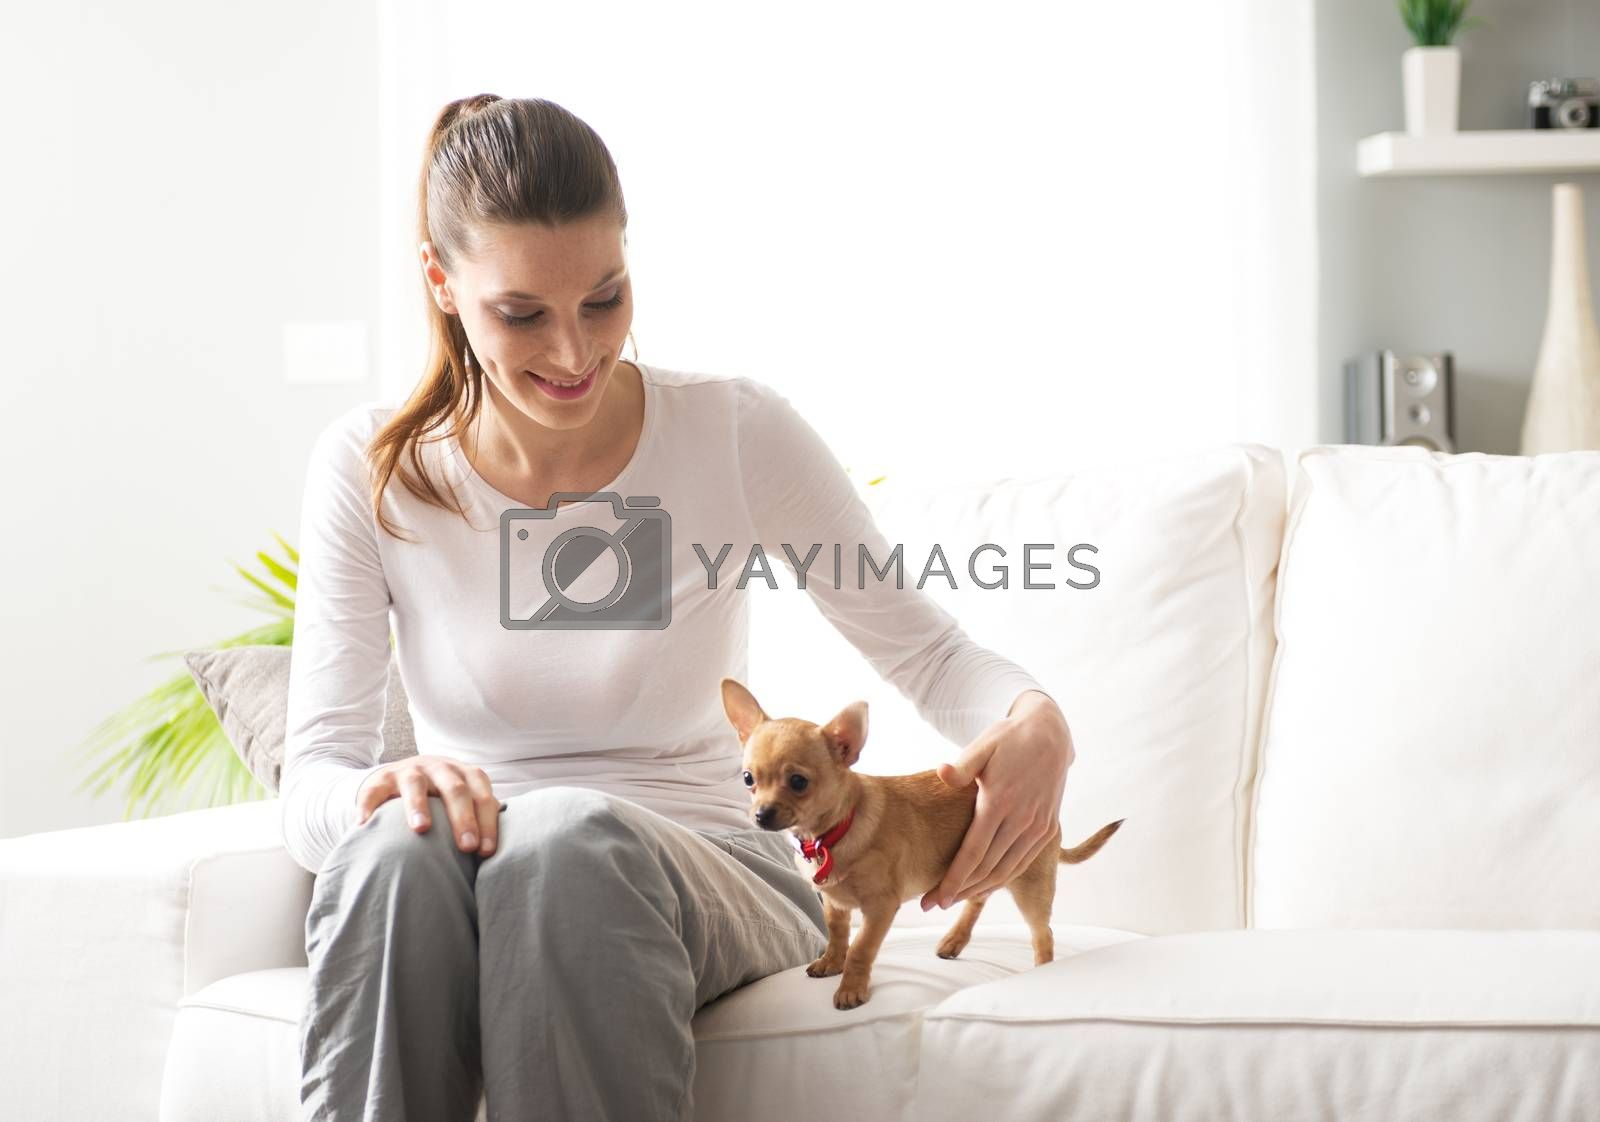 Smiling woman with dog sitting on sofa in the living room.